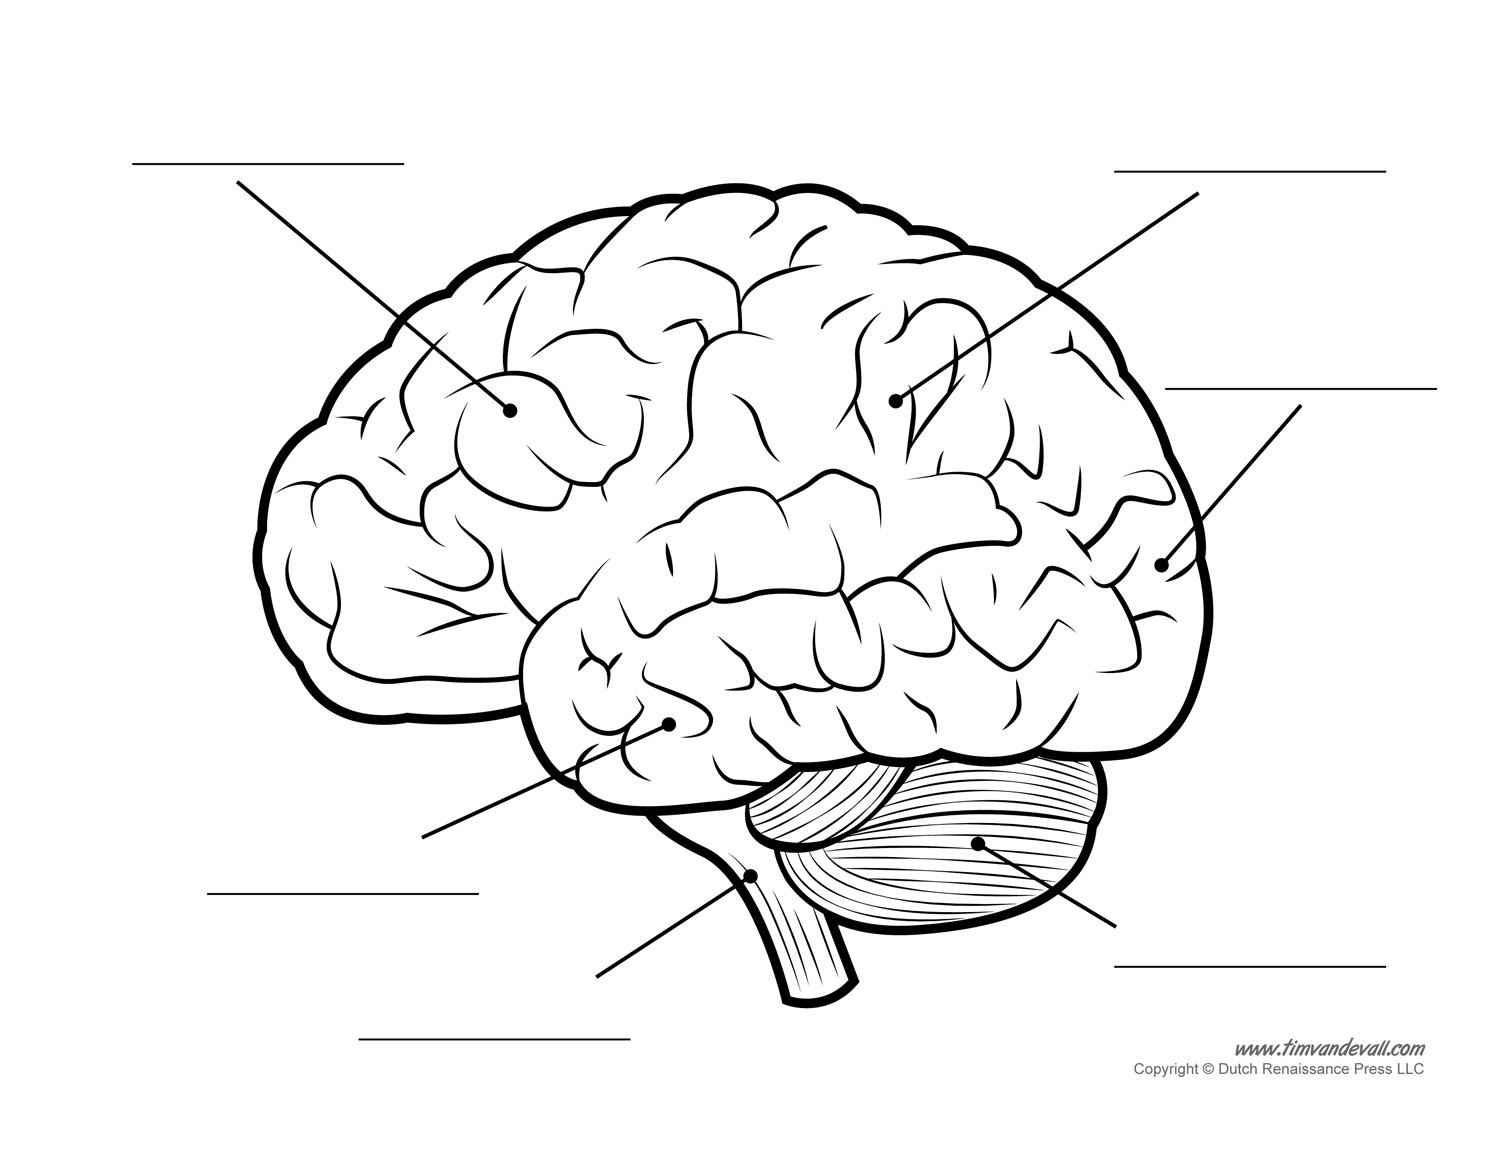 The Human Brain DiagramThe Human Brain Diagram Blank